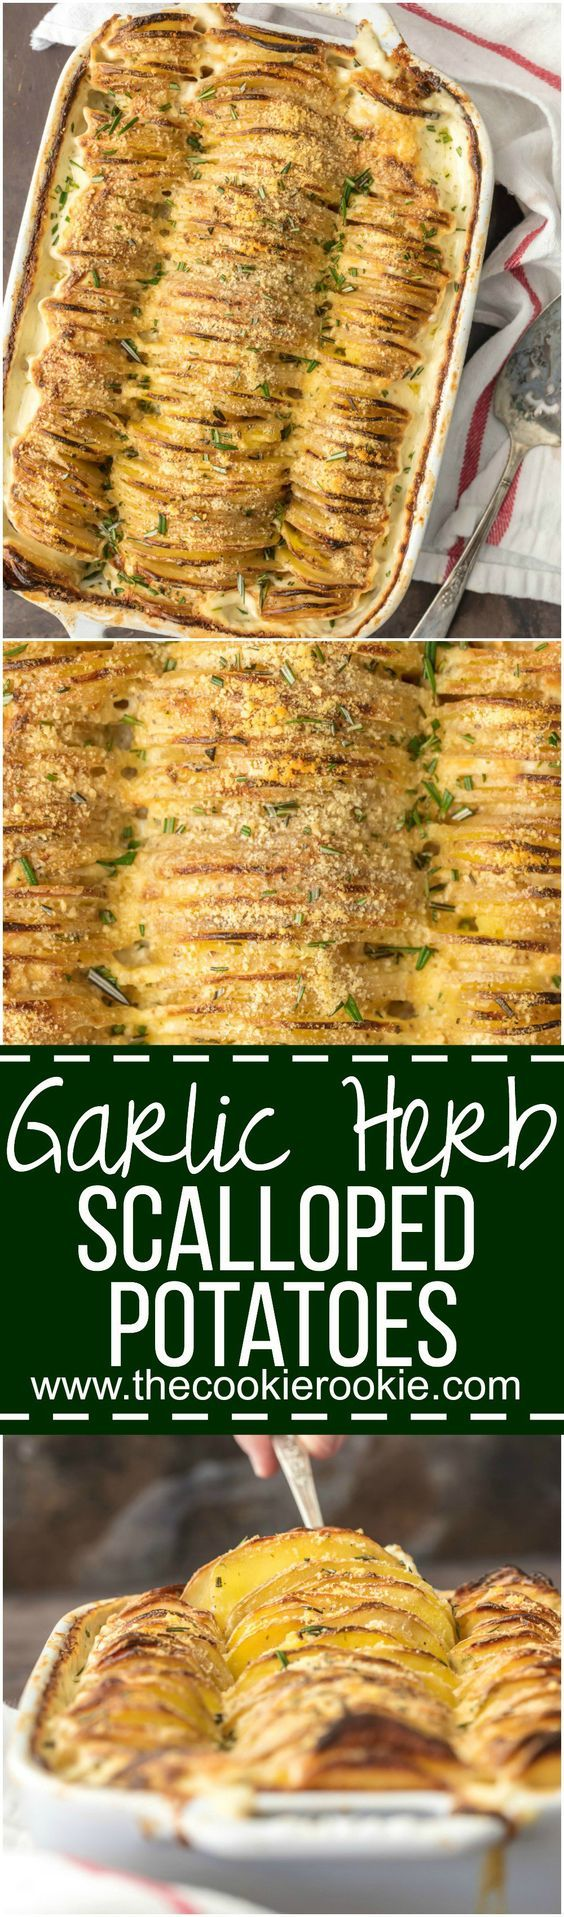 These CHEESY GARLIC HERB SCALLOPED POTATOES are one of our favorite holiday side dishes! Made creamy with a secret ingredient that you'll never skip again! Beautiful and delicious potatoes gratin!